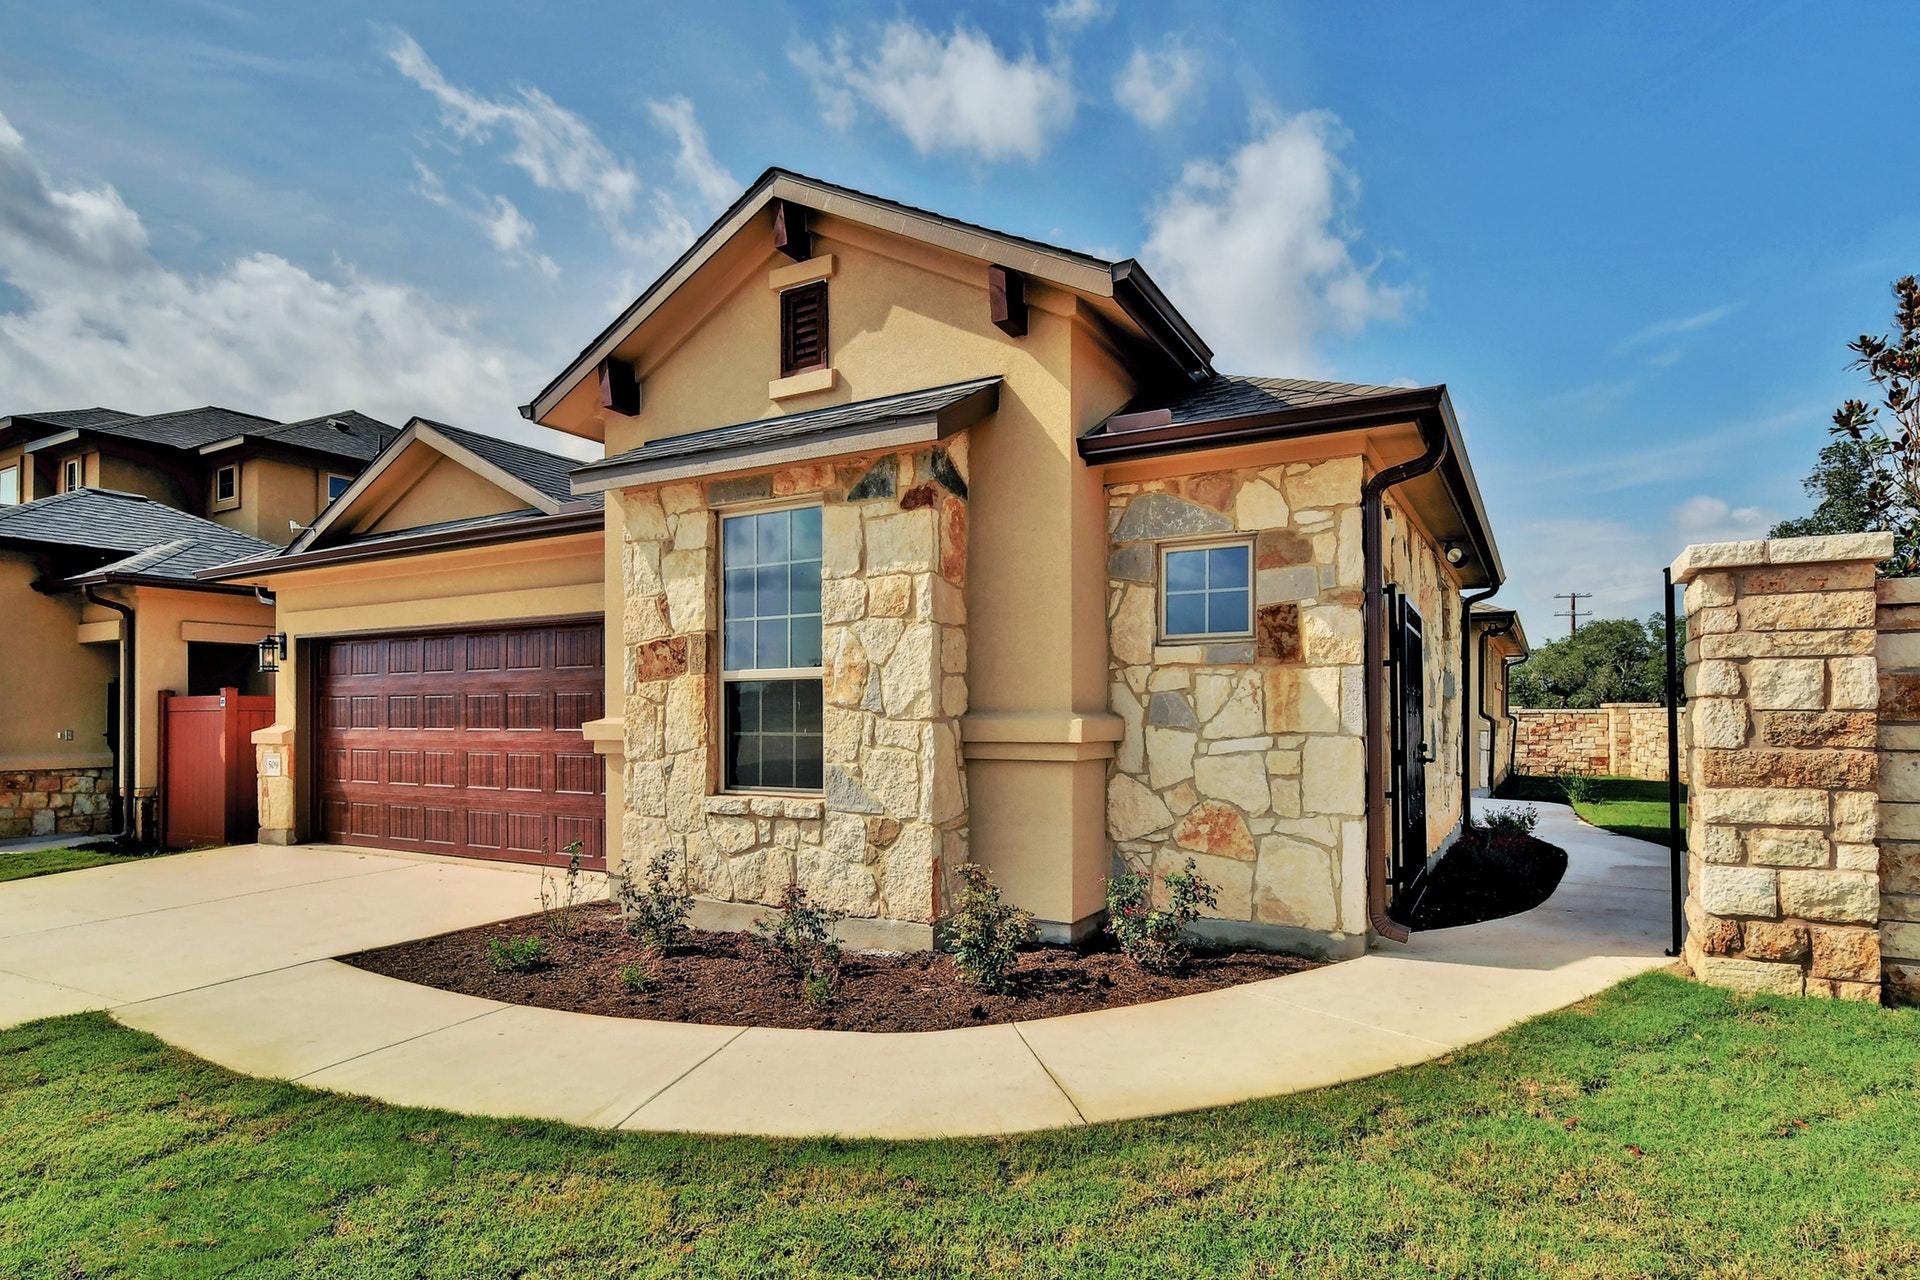 Gardens At Verde Vista By Spicewood Communities In Austin Texas